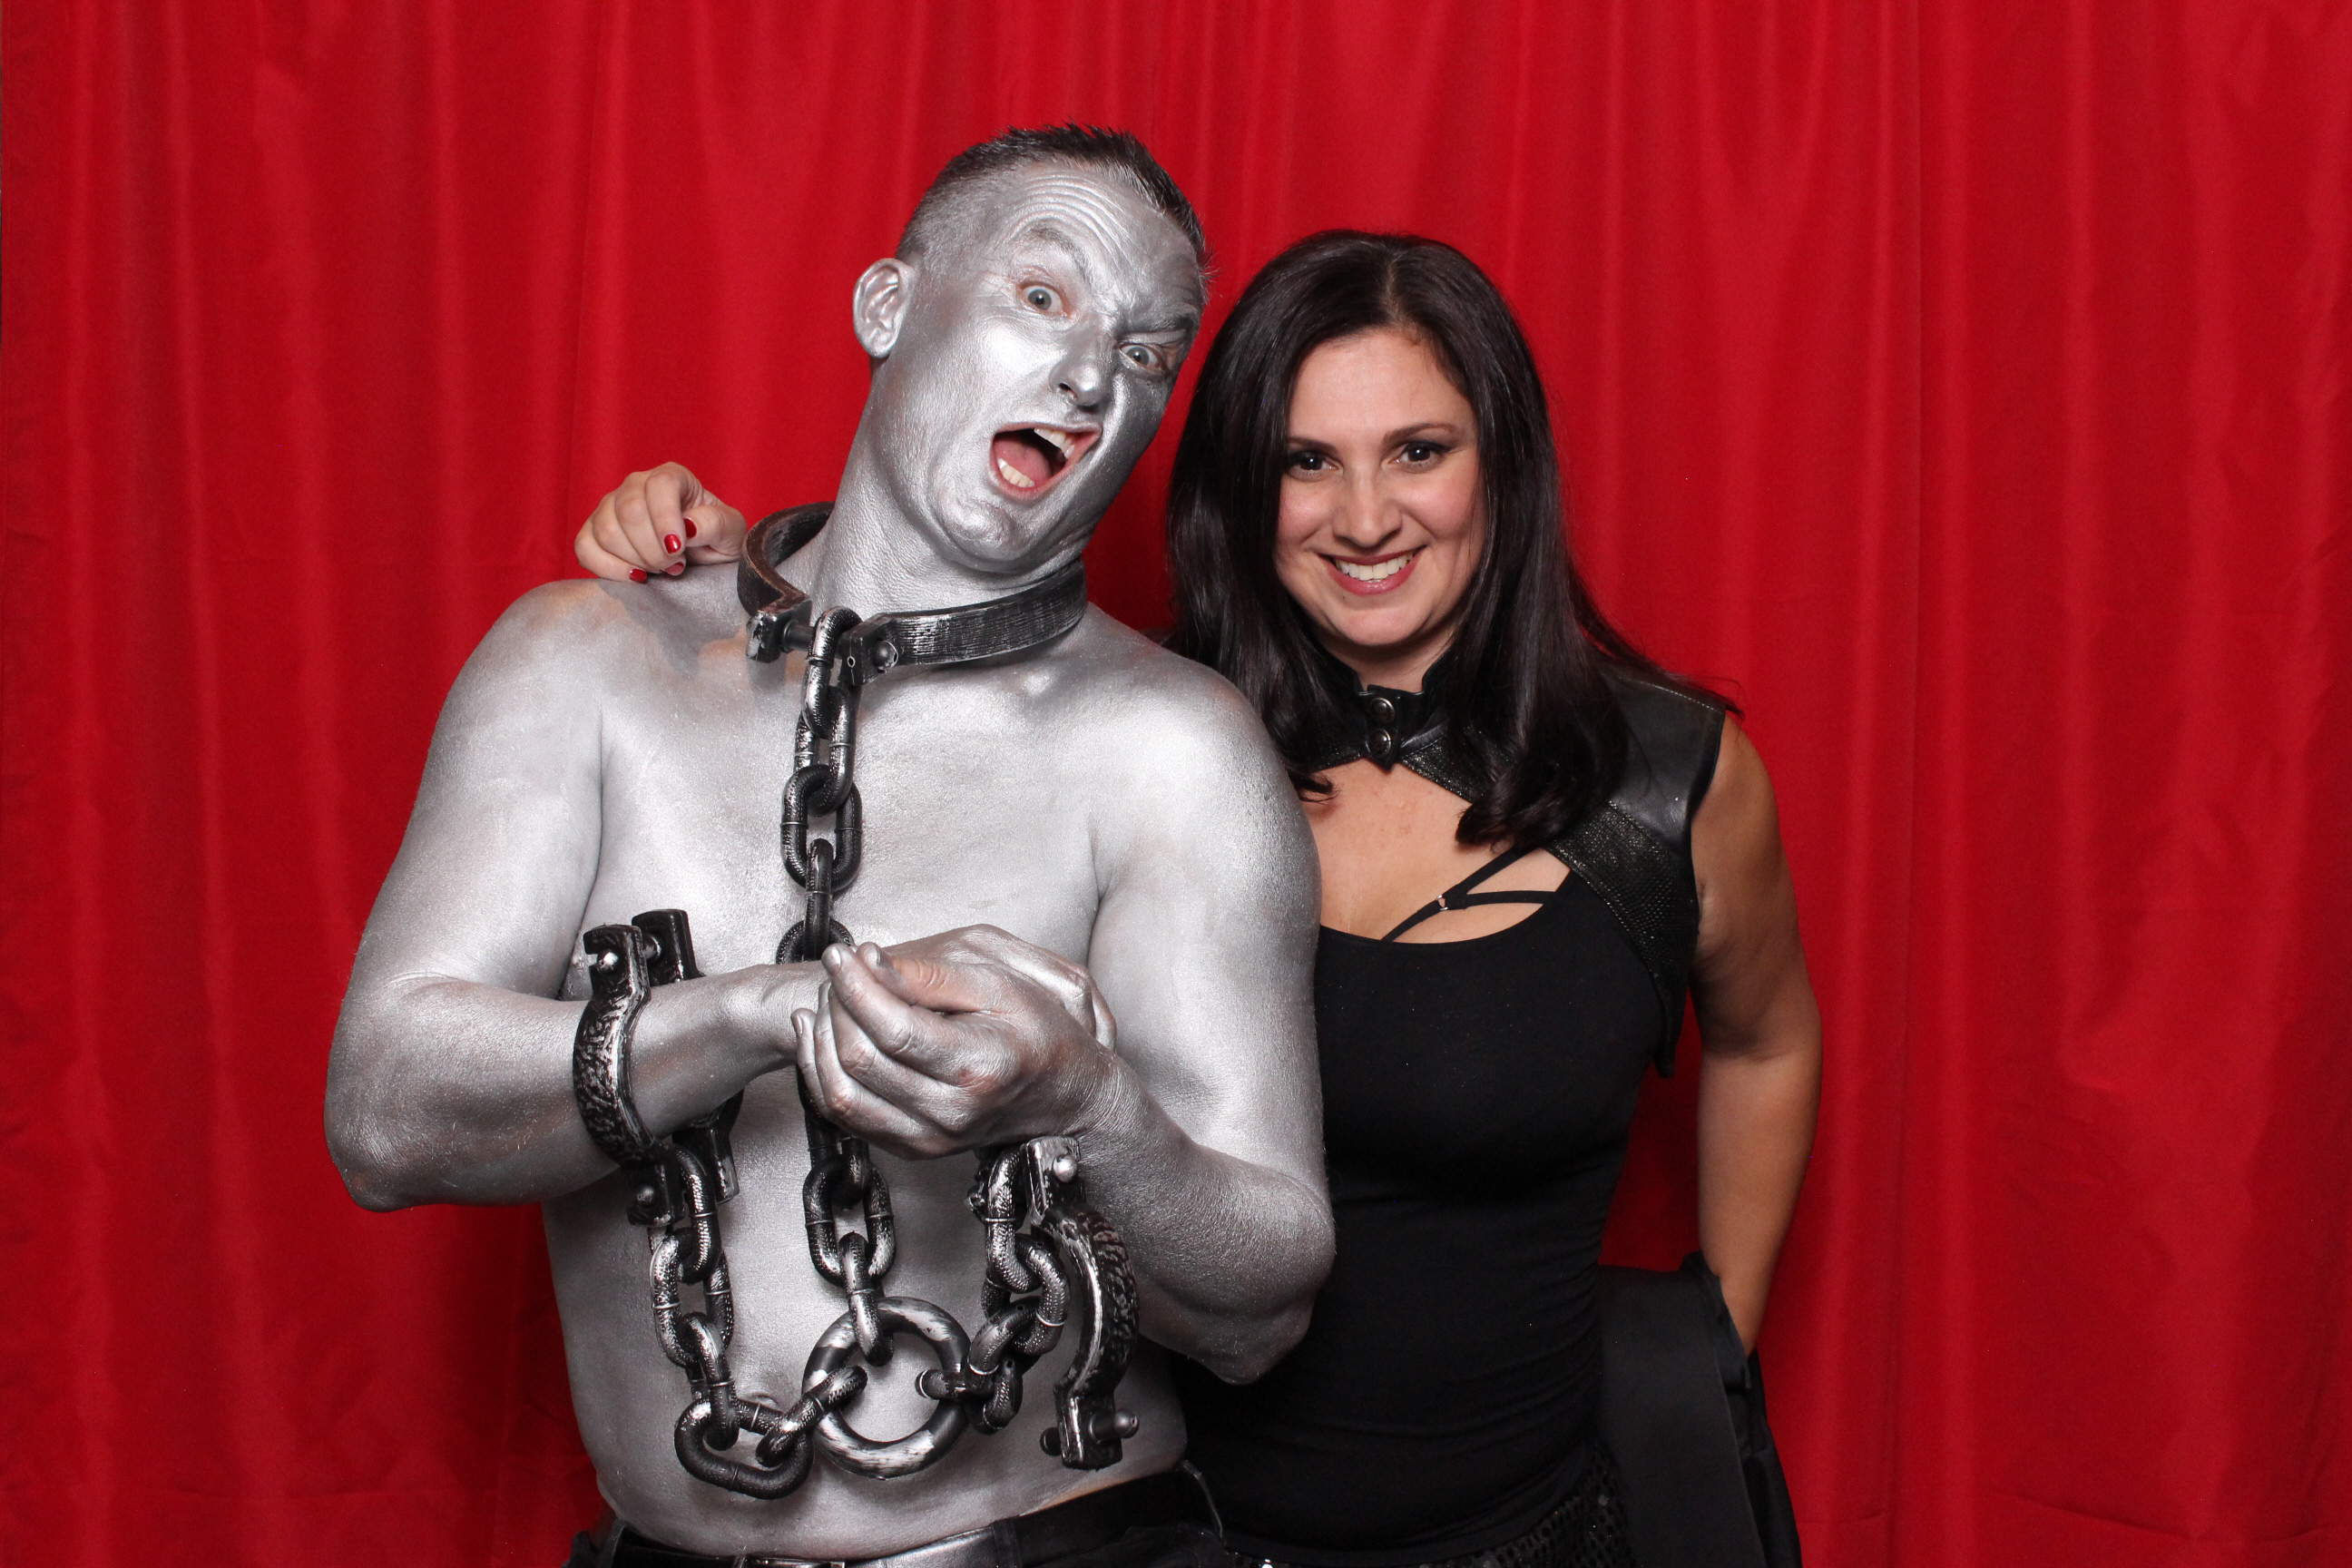 Party Photo Booth | Instant Photo Booth Hire | Sydney | Photo Booth